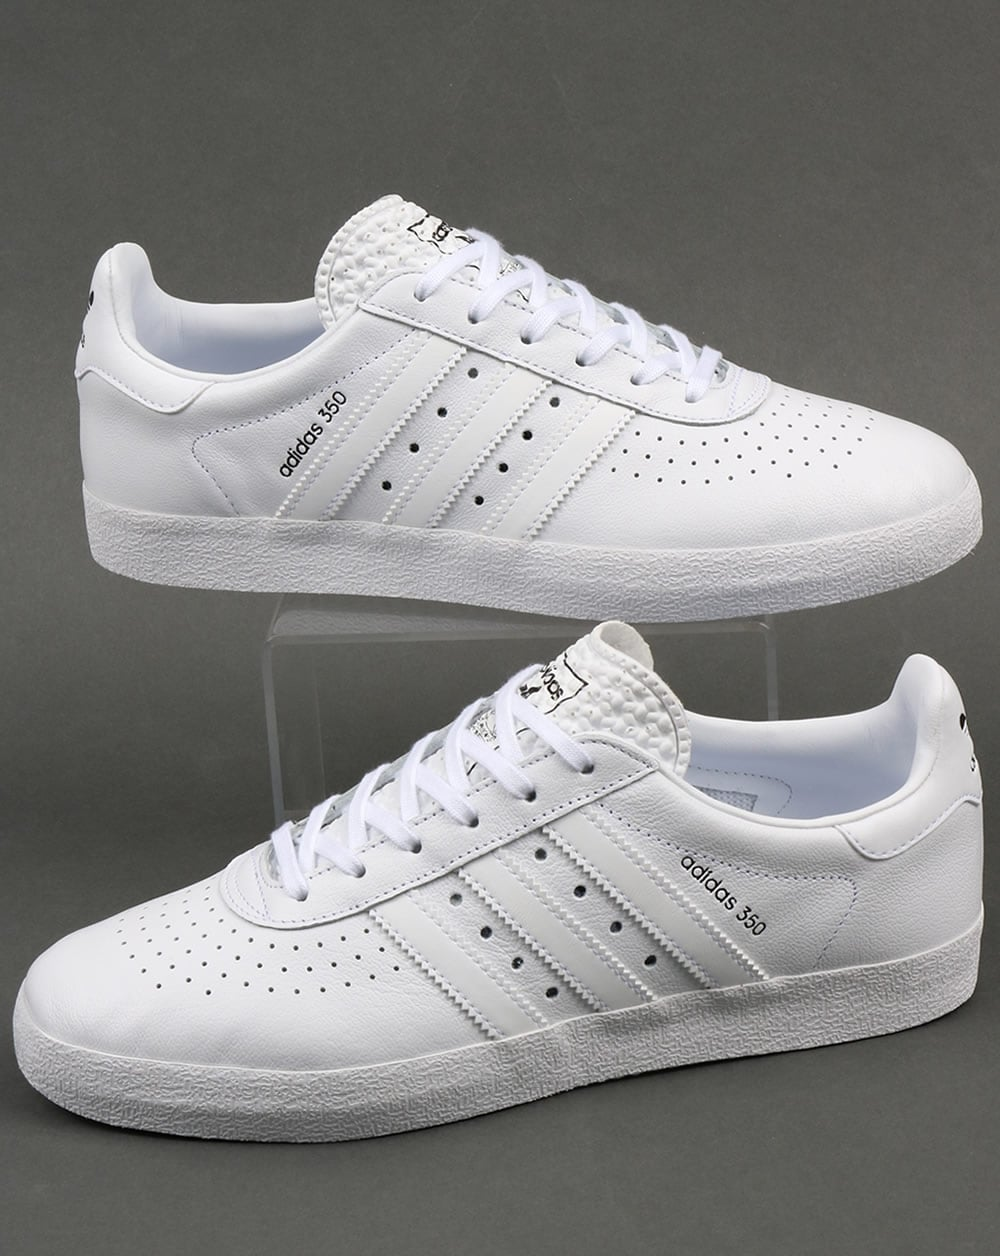 83bfebcb8 adidas Trainers Adidas 350 Trainers White